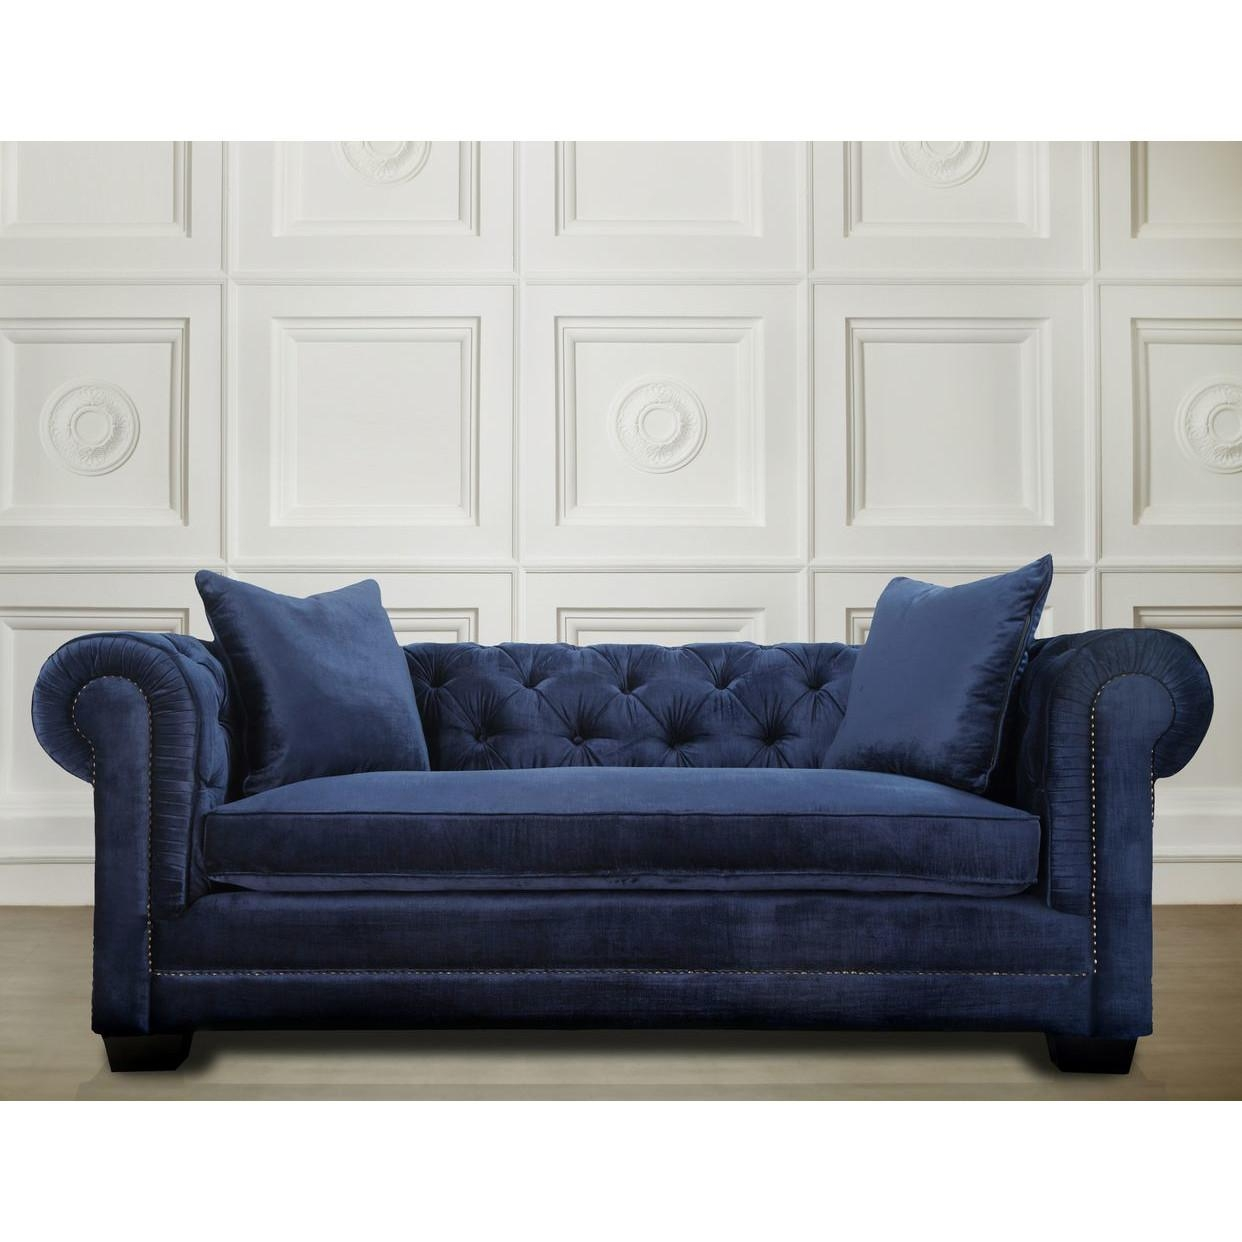 Sofas Center : Furniture Of America Sm3071 Sf Cornelia With Blue Jean Sofas (Image 17 of 20)